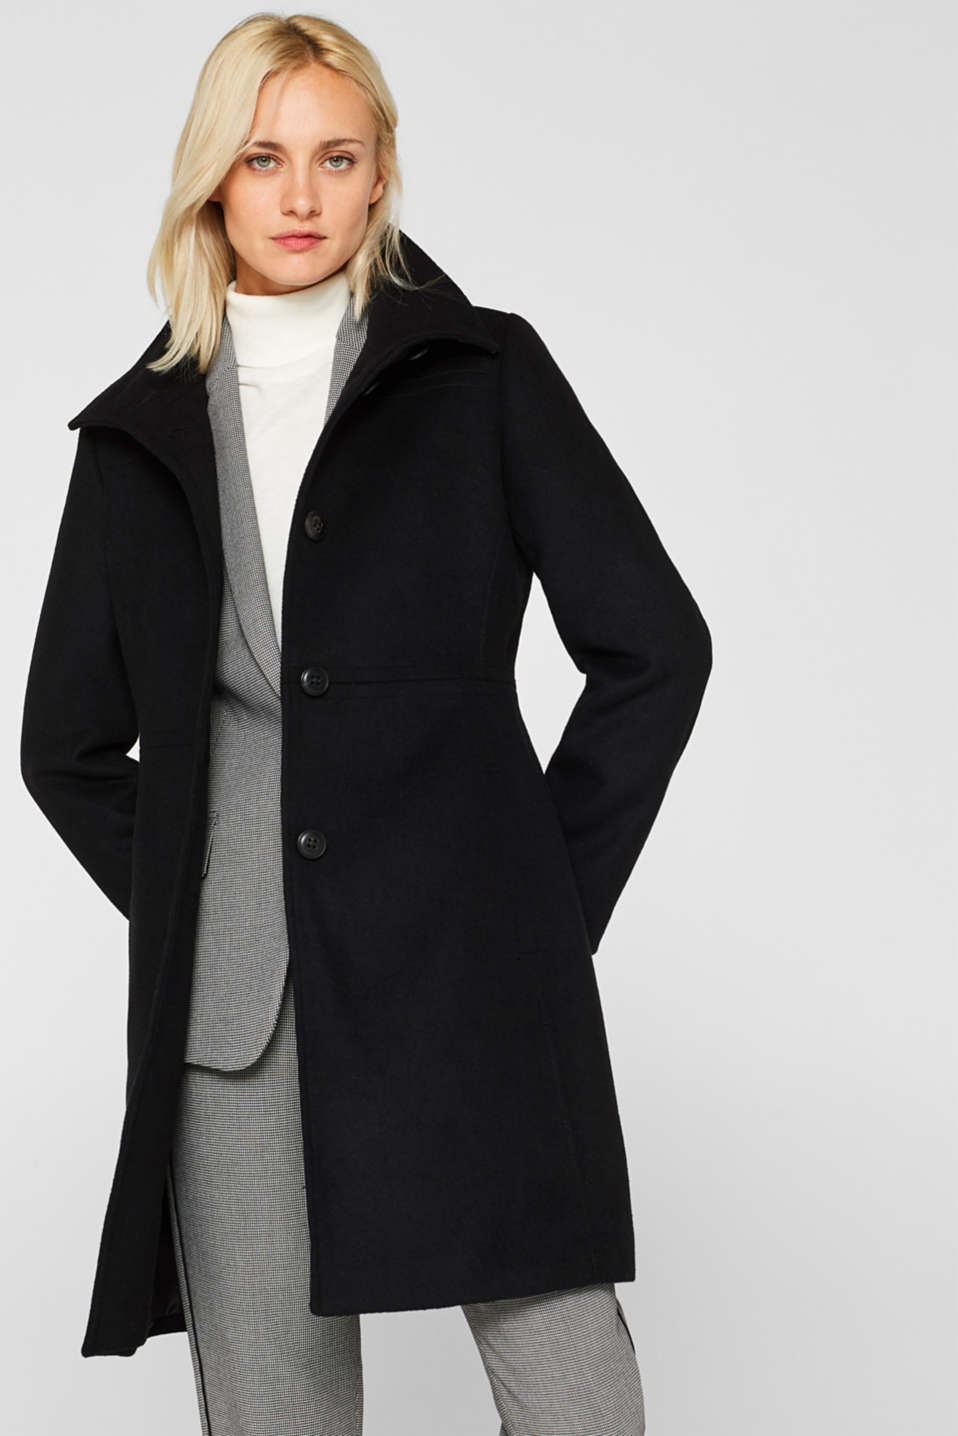 With wool: Coat with an adjustable collar